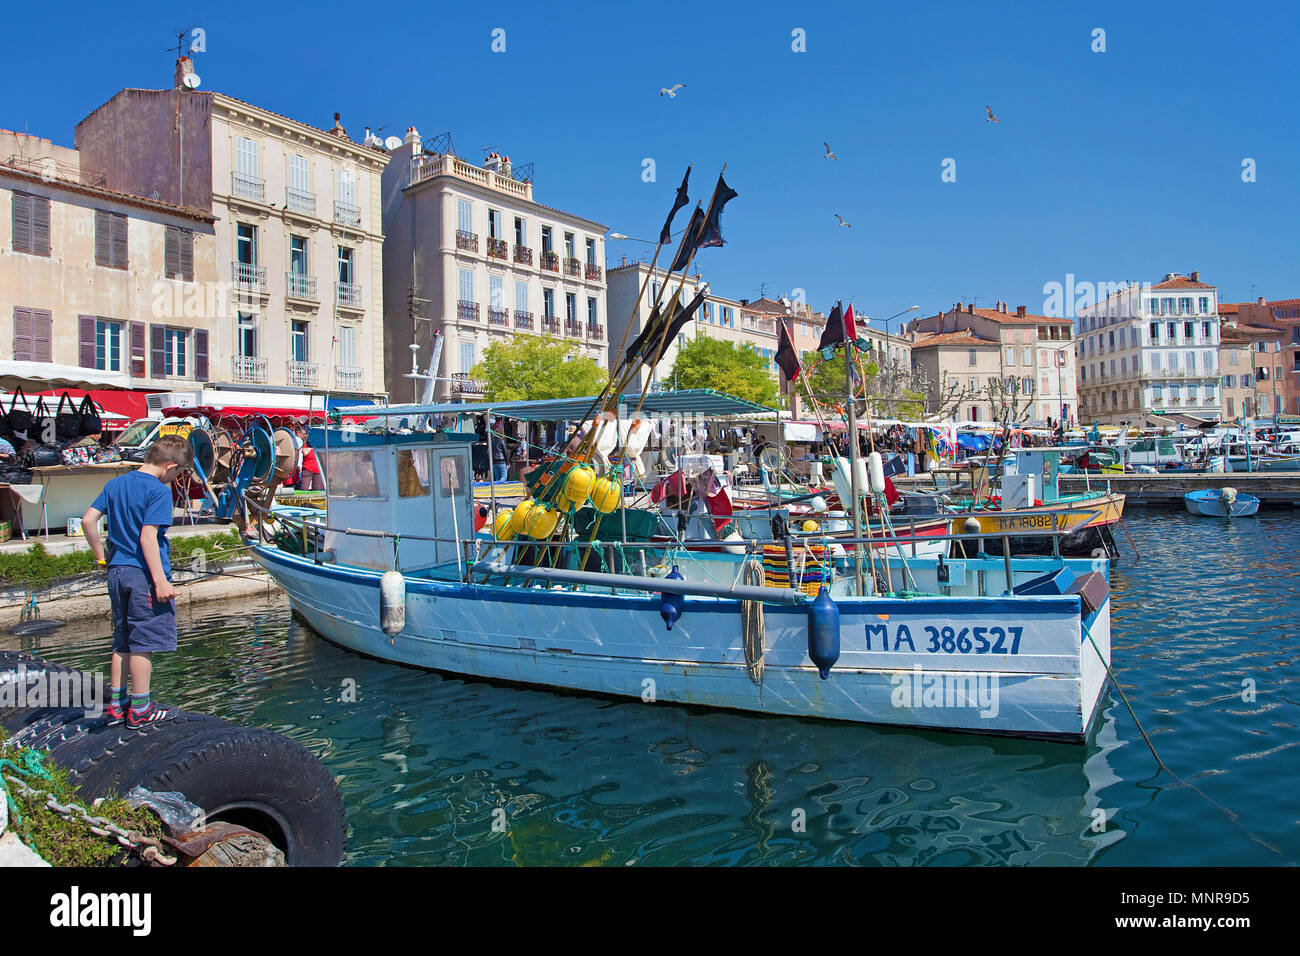 Fishing harbour of La Ciotat, Bouches-du-Rhone, Provence-Alpes-Côte d'Azur, South France, France, Europe Stock Photo